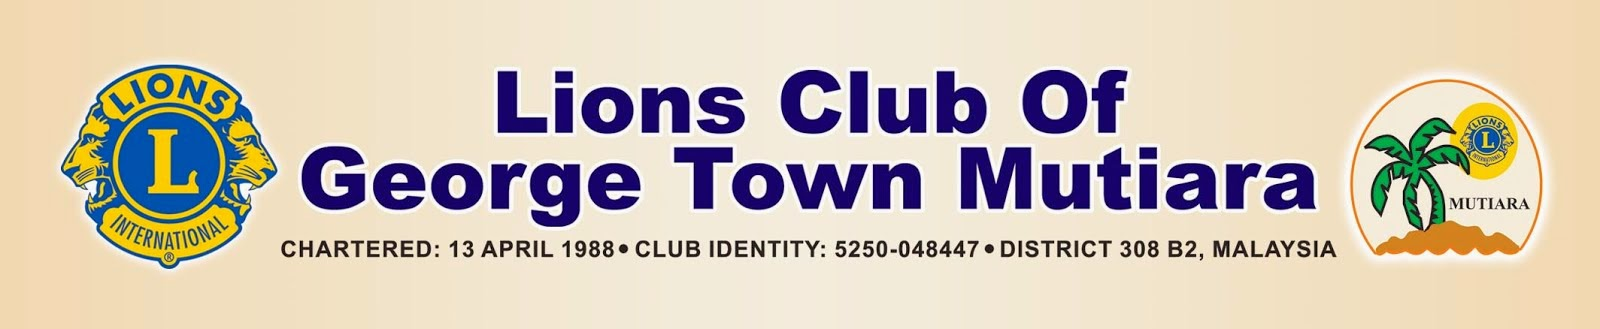 LIONS CLUB OF GEORGE TOWN MUTIARA, PENANG